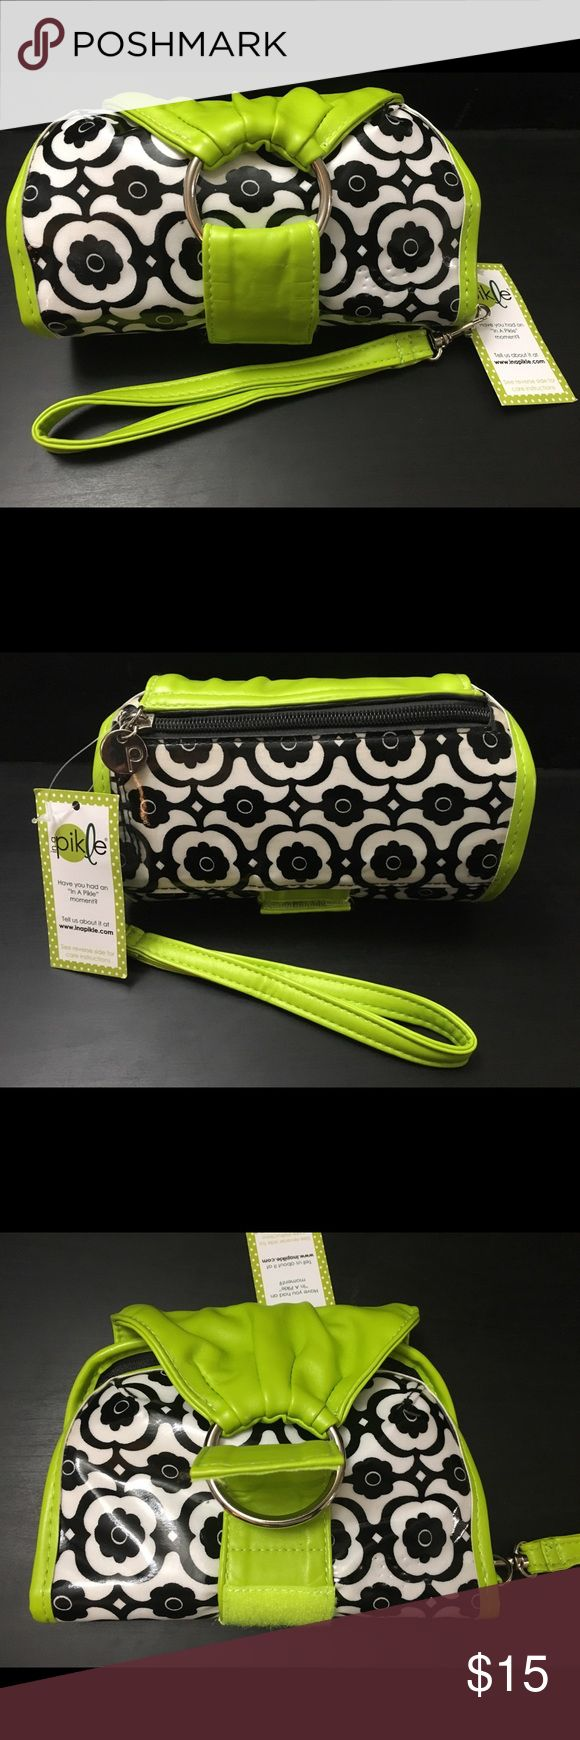 "Sweet Pikle in Licorice Blossom The ""In A Pikle"" bag is the perfect companion for the busy person on-the-go. It's unique patented design is fashionable and functional! The bag is approximately 10″ x 7″ open and 3.5″ when closed. This bag has a handy ring closure. It can easily be opened single handedly. The sturdy strap inserts into the large ring and folds over itself. It is secured in place with a hook and loop fastener. It does not come with the interior pouches. Bags Clutches & Wristlets"